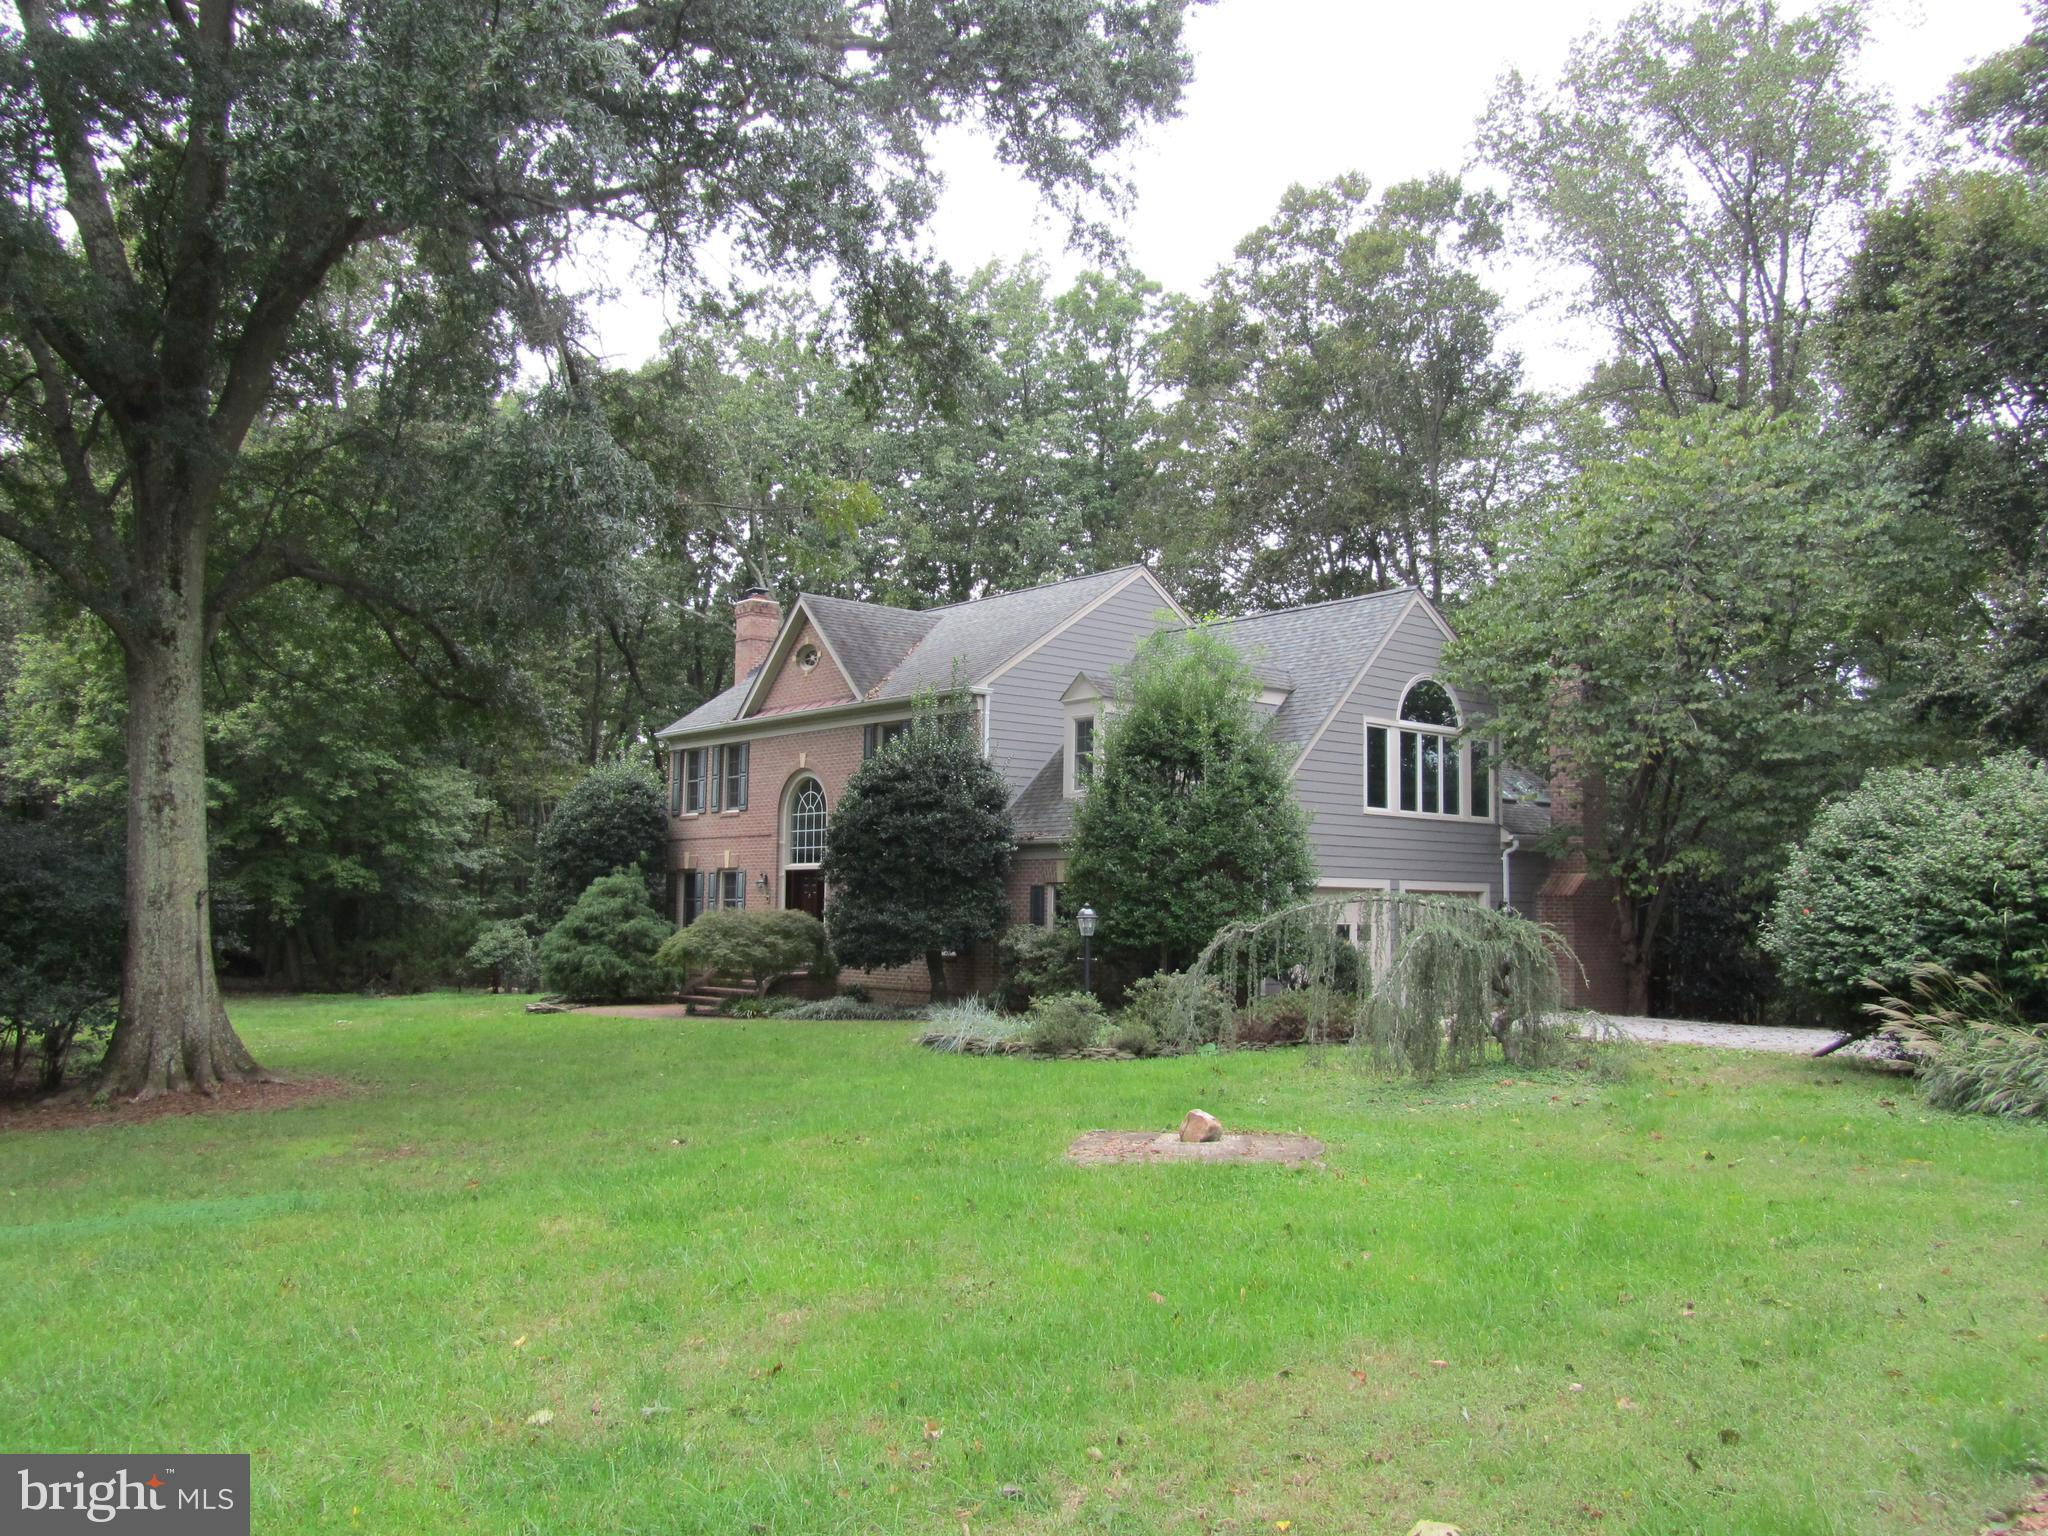 **Tired of look alike crowded S/D houses?**2 ac Lorton location**Gunston, Hidden Gem of Fx.Co**gleaming hardwood flrs., 2 car gar. Anderson windows, Gourmet Kit.w/ high-end appl & family rm., Brick & Hardi-Plank siding, sauna & sun porch. 1000's of acs of Parkland for hiking, boating, golf, etc; Conv. to rest., shop. and easy com.via 95, 2 VRE sta. & Pkwy. to Ft Belvoir, DC &OldTown. must see**